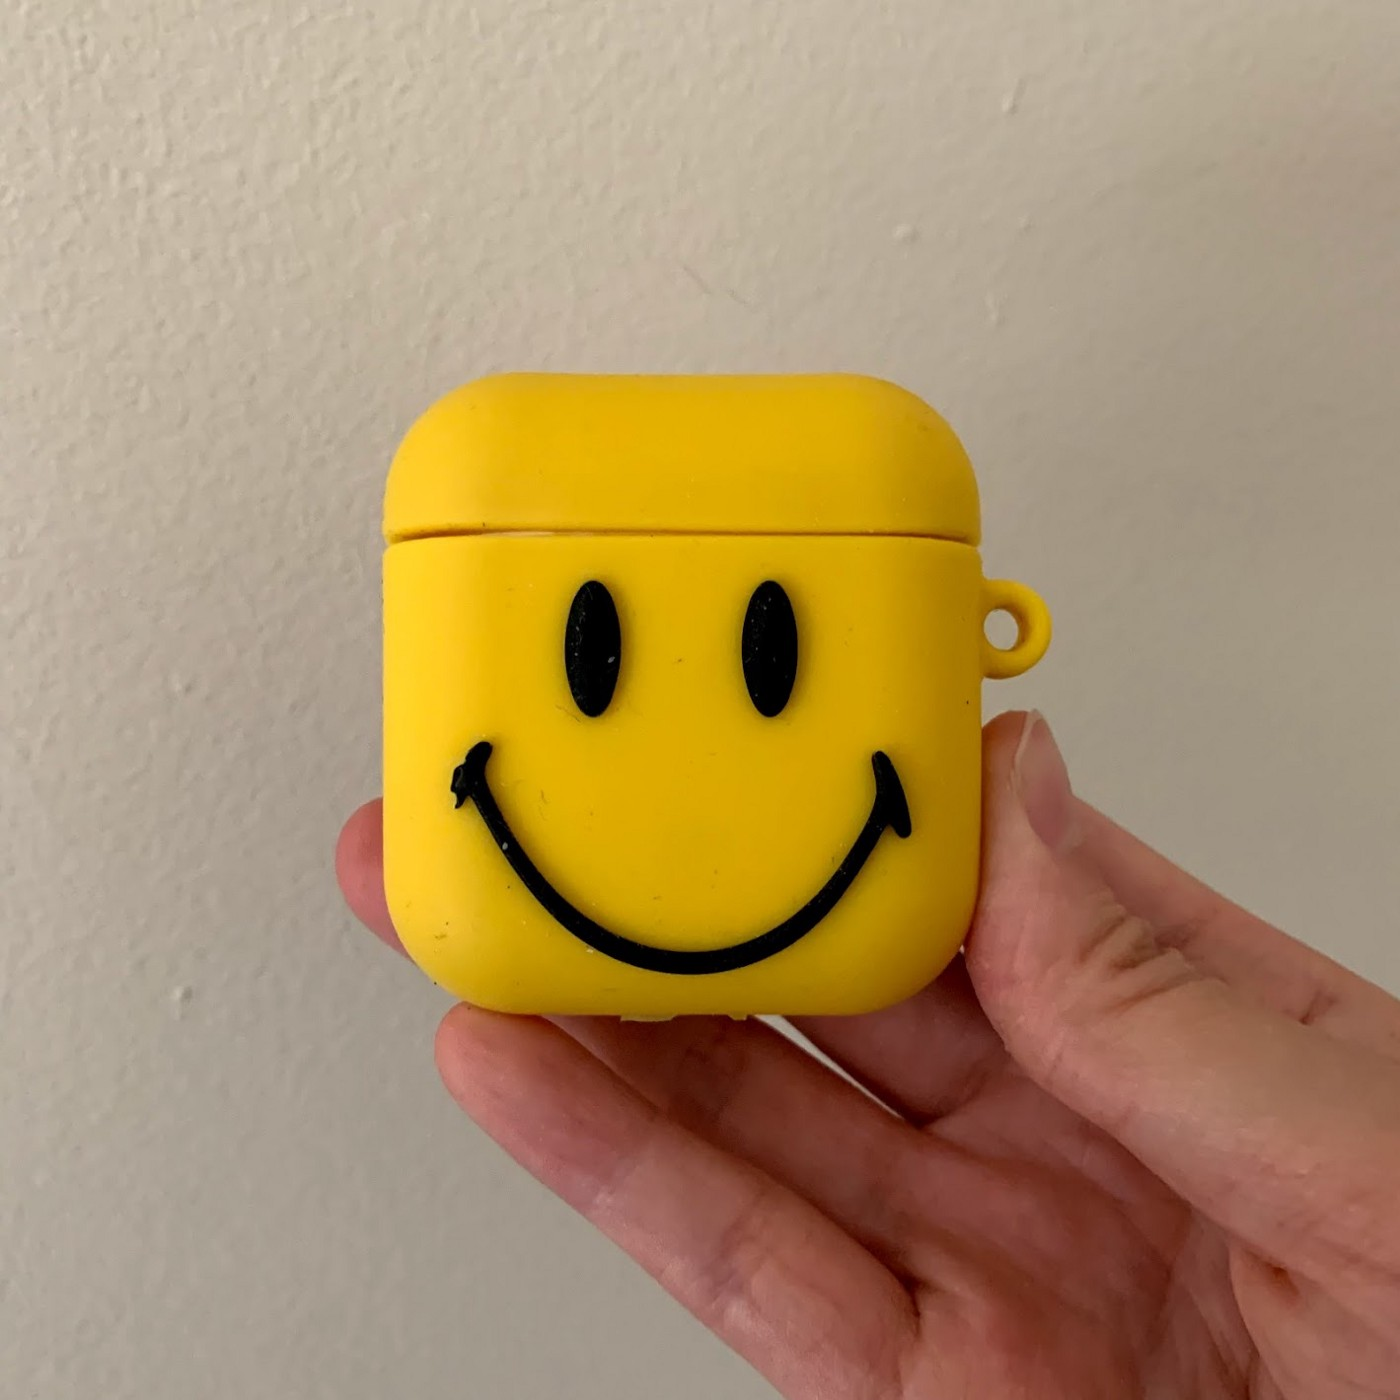 Bright yellow square AirPods case with smiley face decal